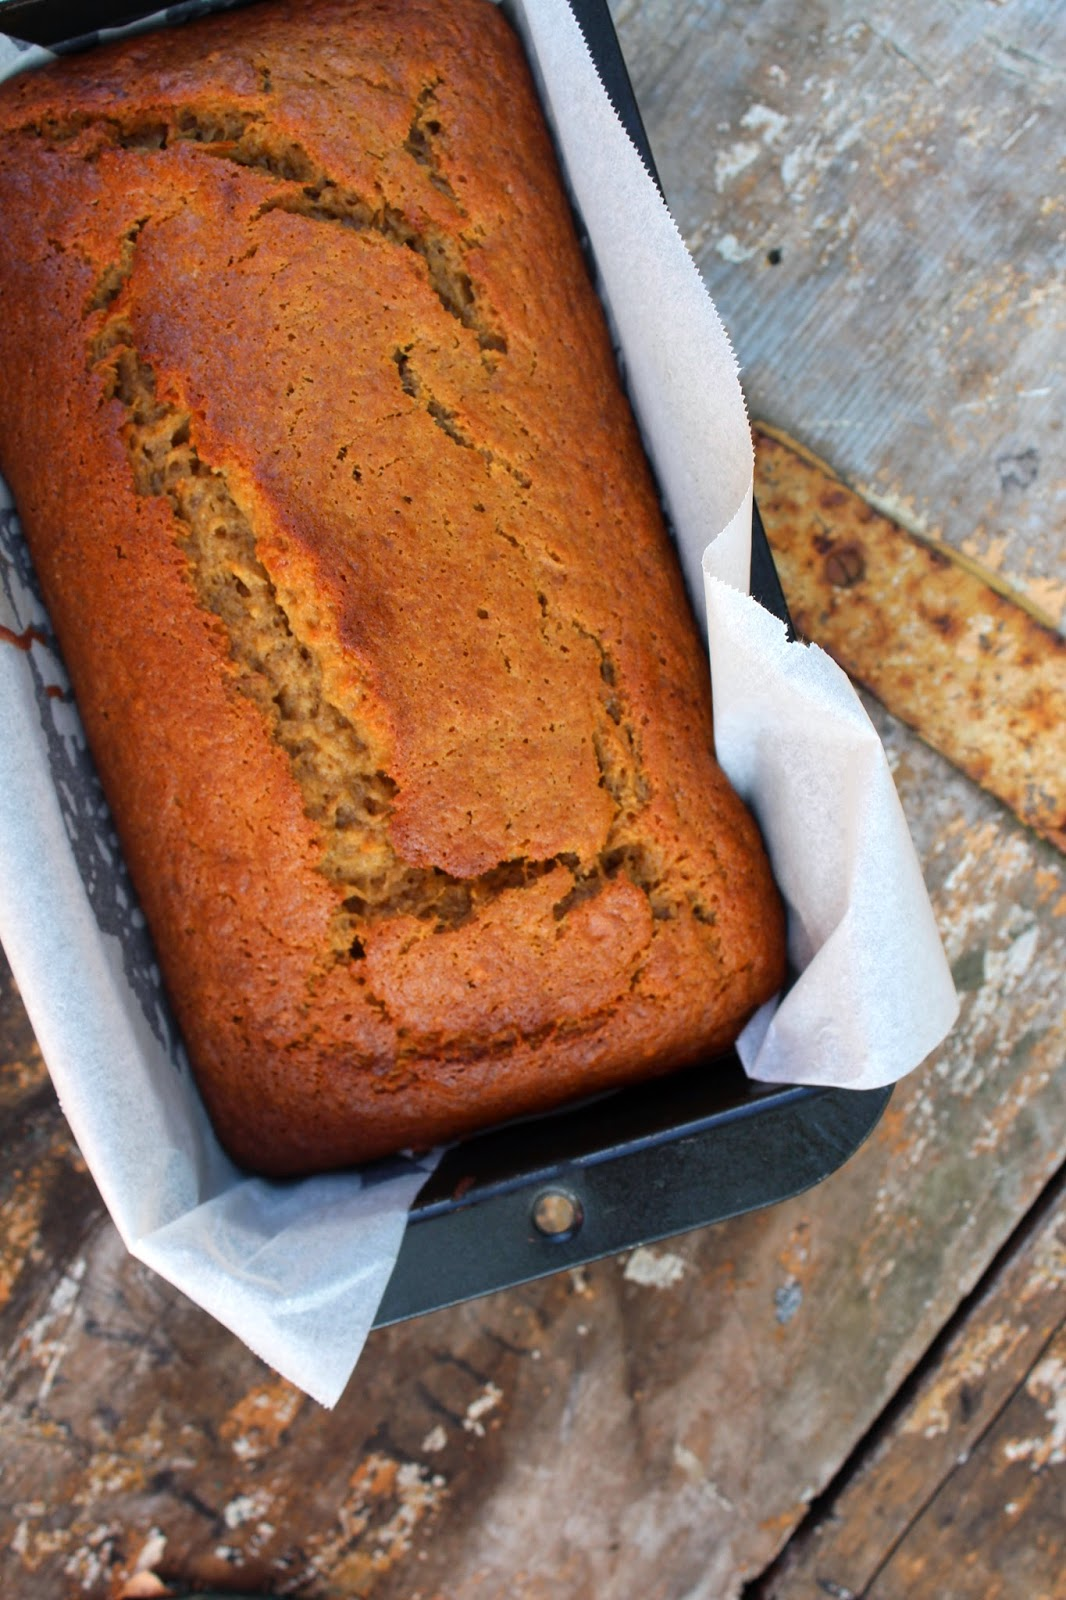 Coastal styling and craft ideas desire empire - Dairy Free Banana Bread Cafe Style